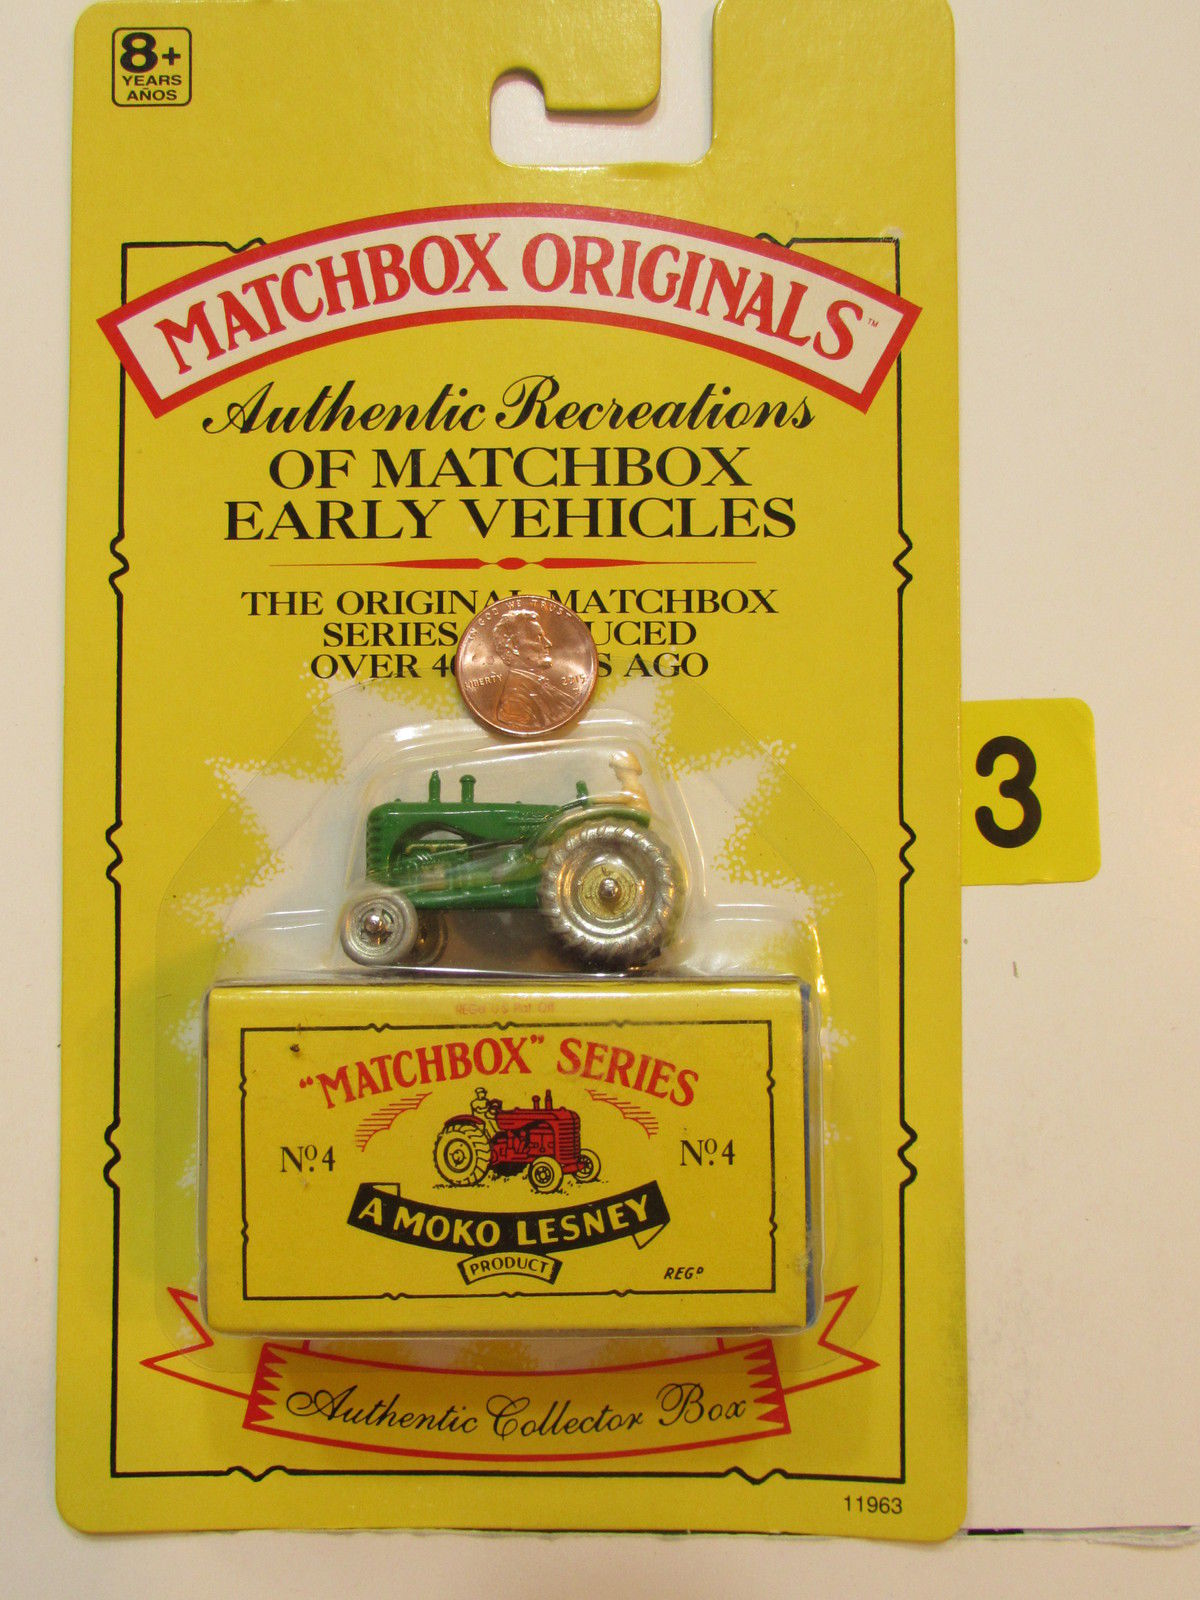 MATCHBOX 1991 ORIGINALS NO.04 THE MASSEY HARRIS TRACTOR - AMOKO LESNEY AUTHENTIC